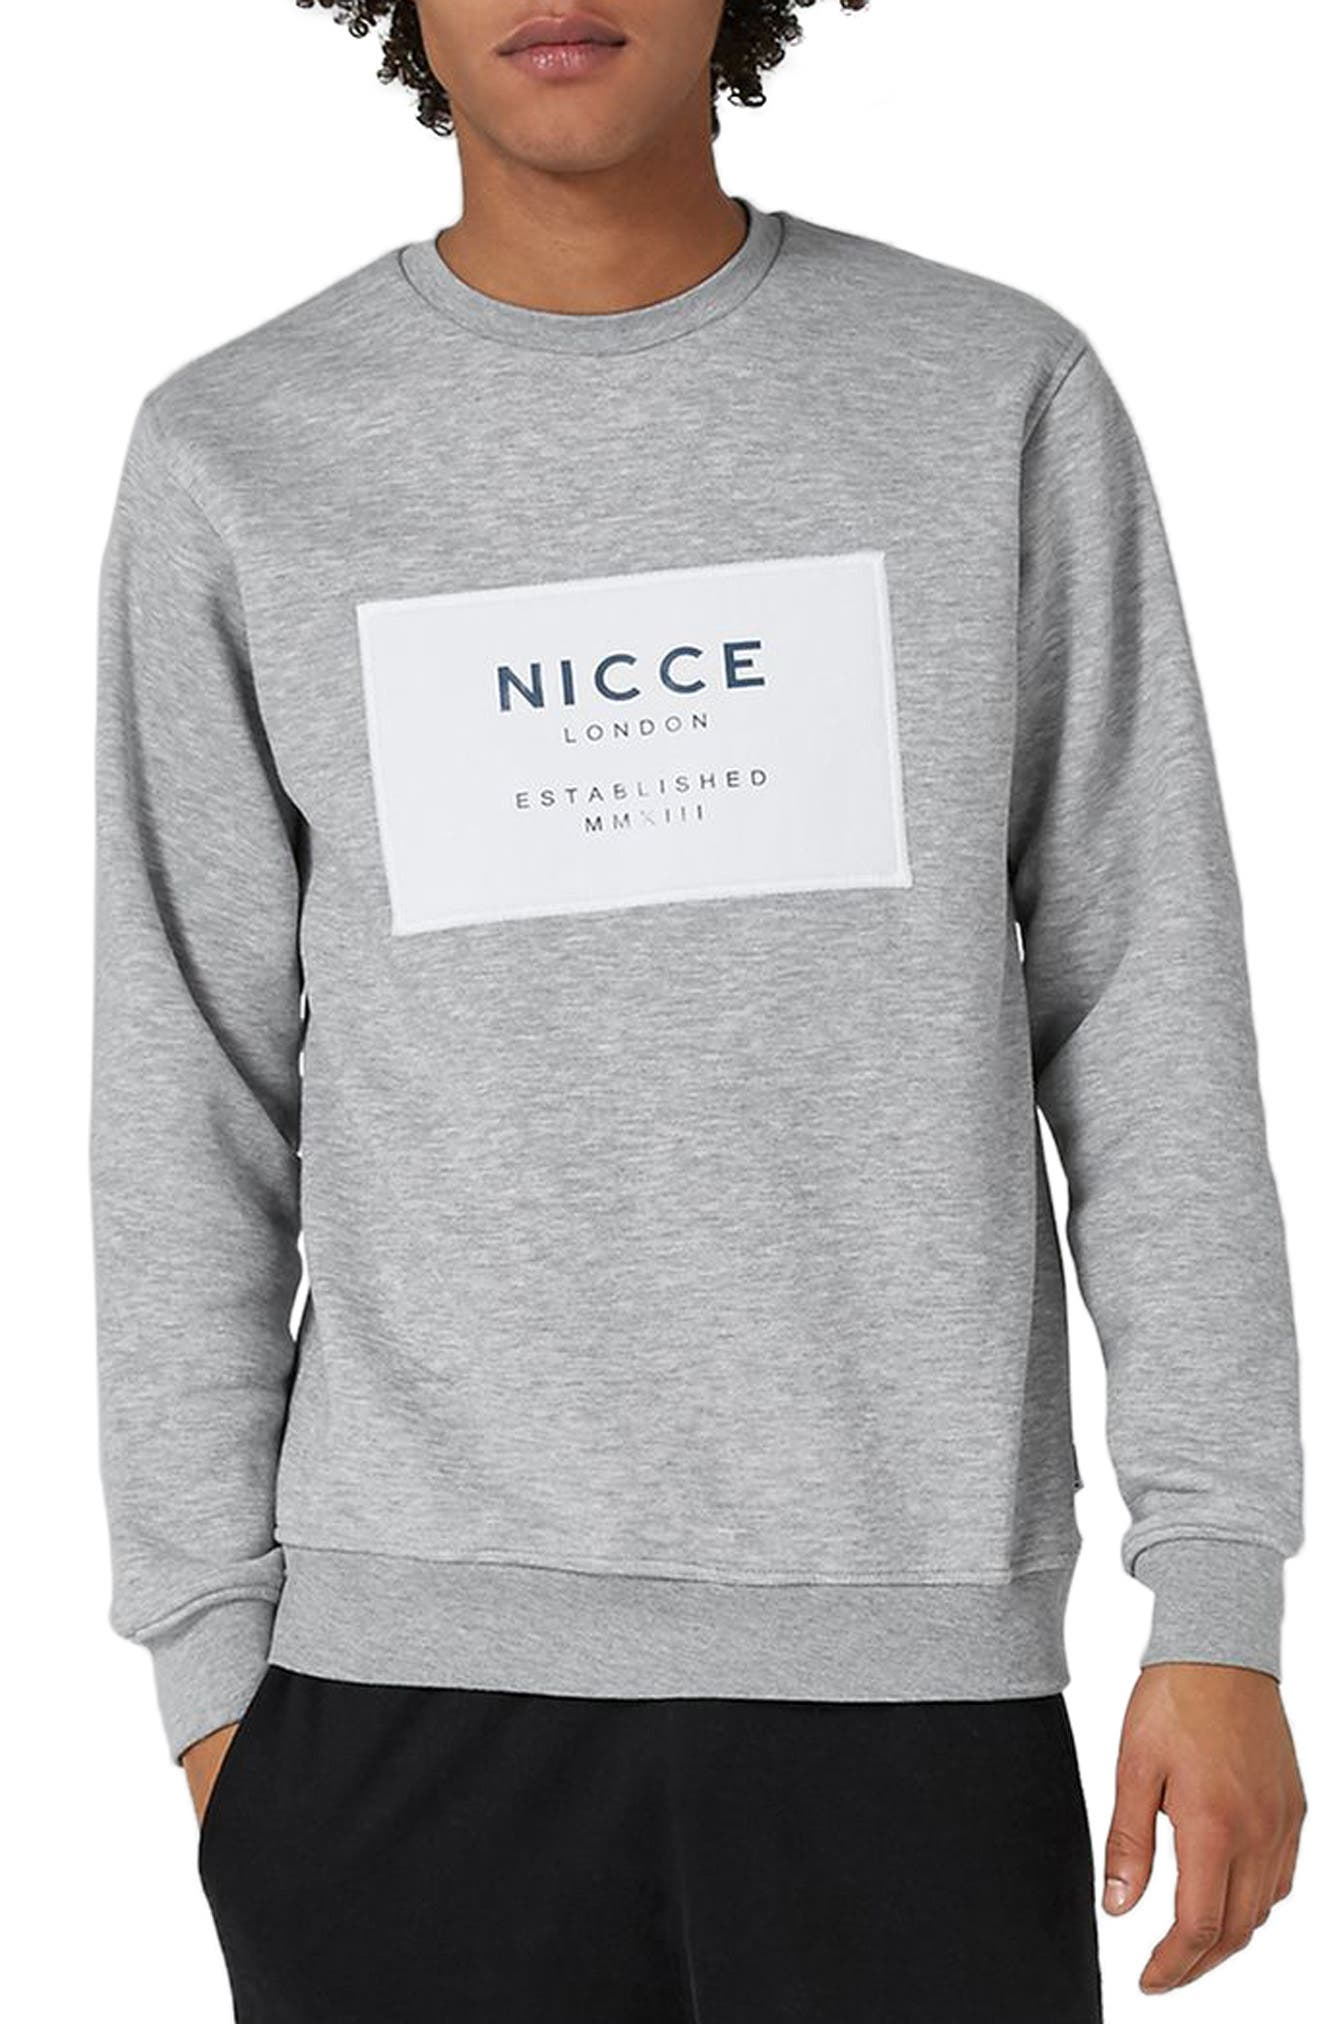 Topman NICCE Logo Patch Sweatshirt